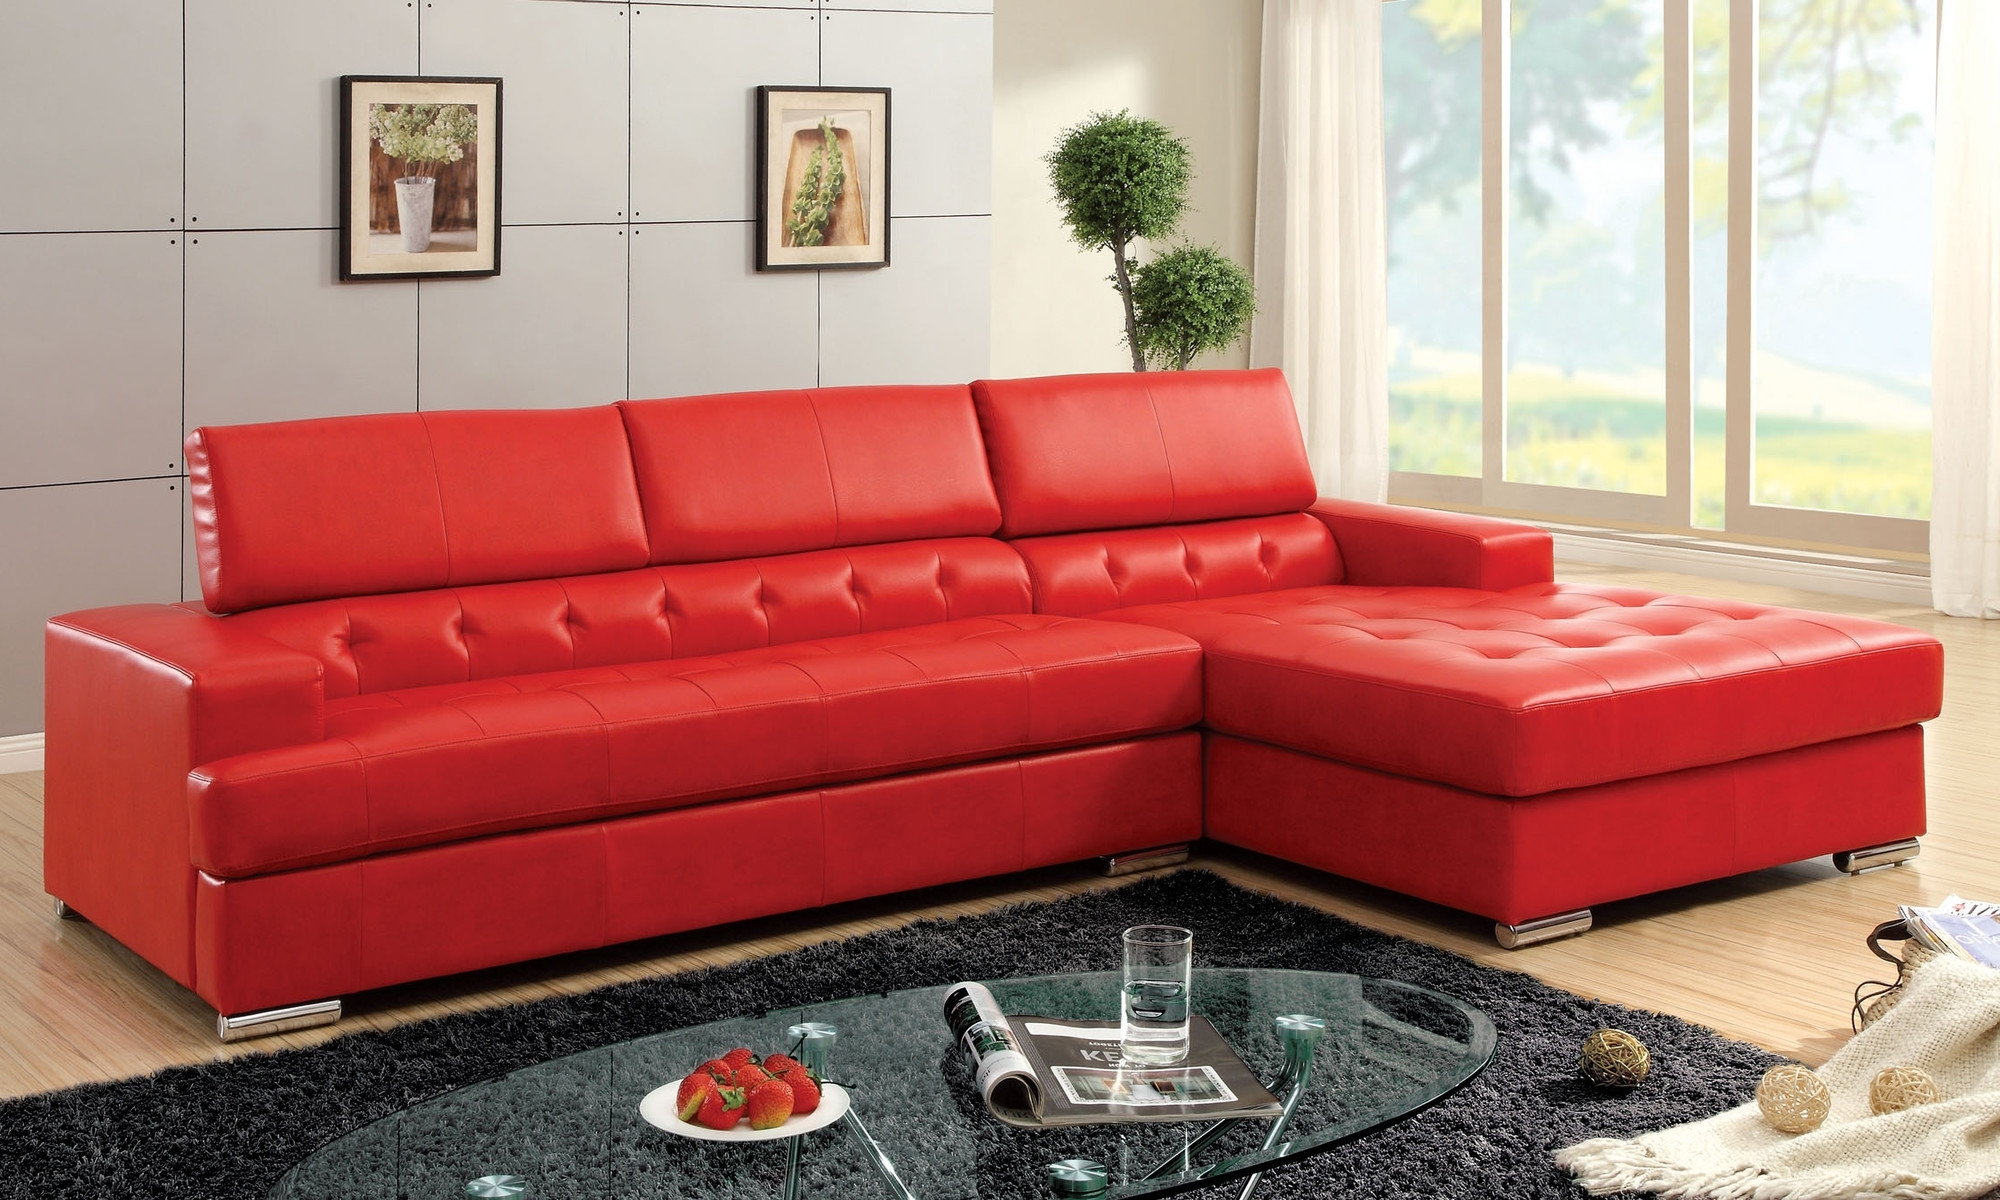 Newest Glamorous Genuine Leather Chesterfield Sofa As Well As Modern Within Red Leather Sectionals With Chaise (View 7 of 20)